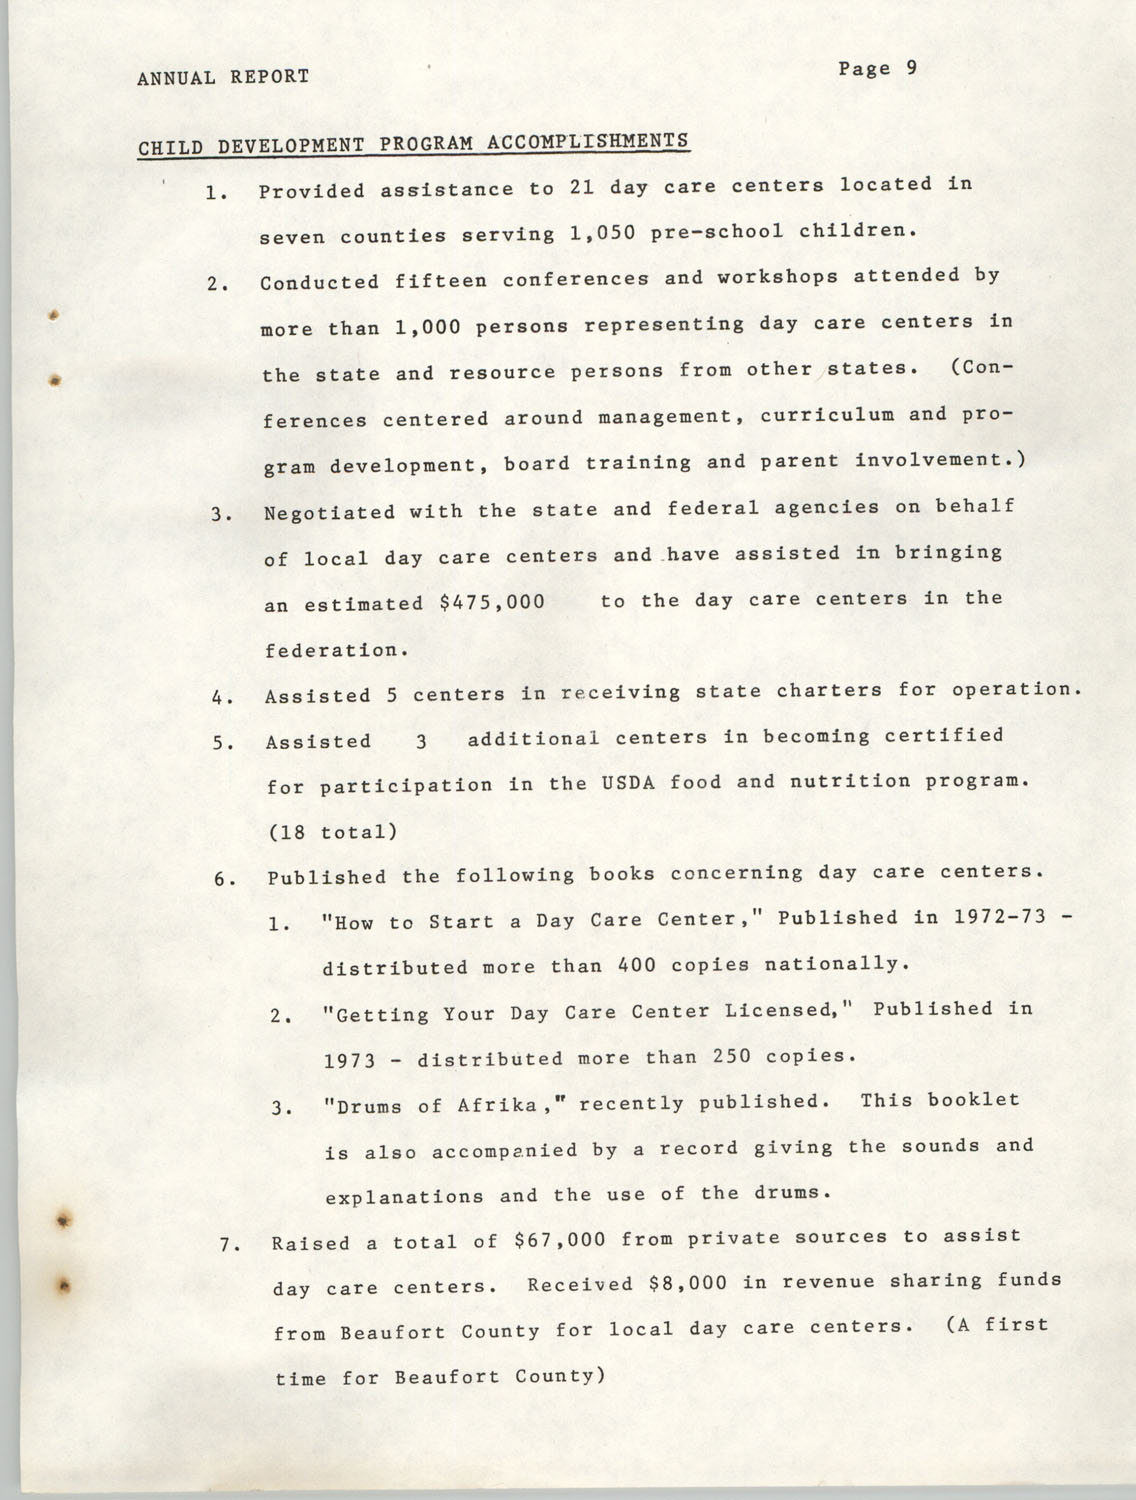 Annual Report, Penn Community Services, 1974, Page 9